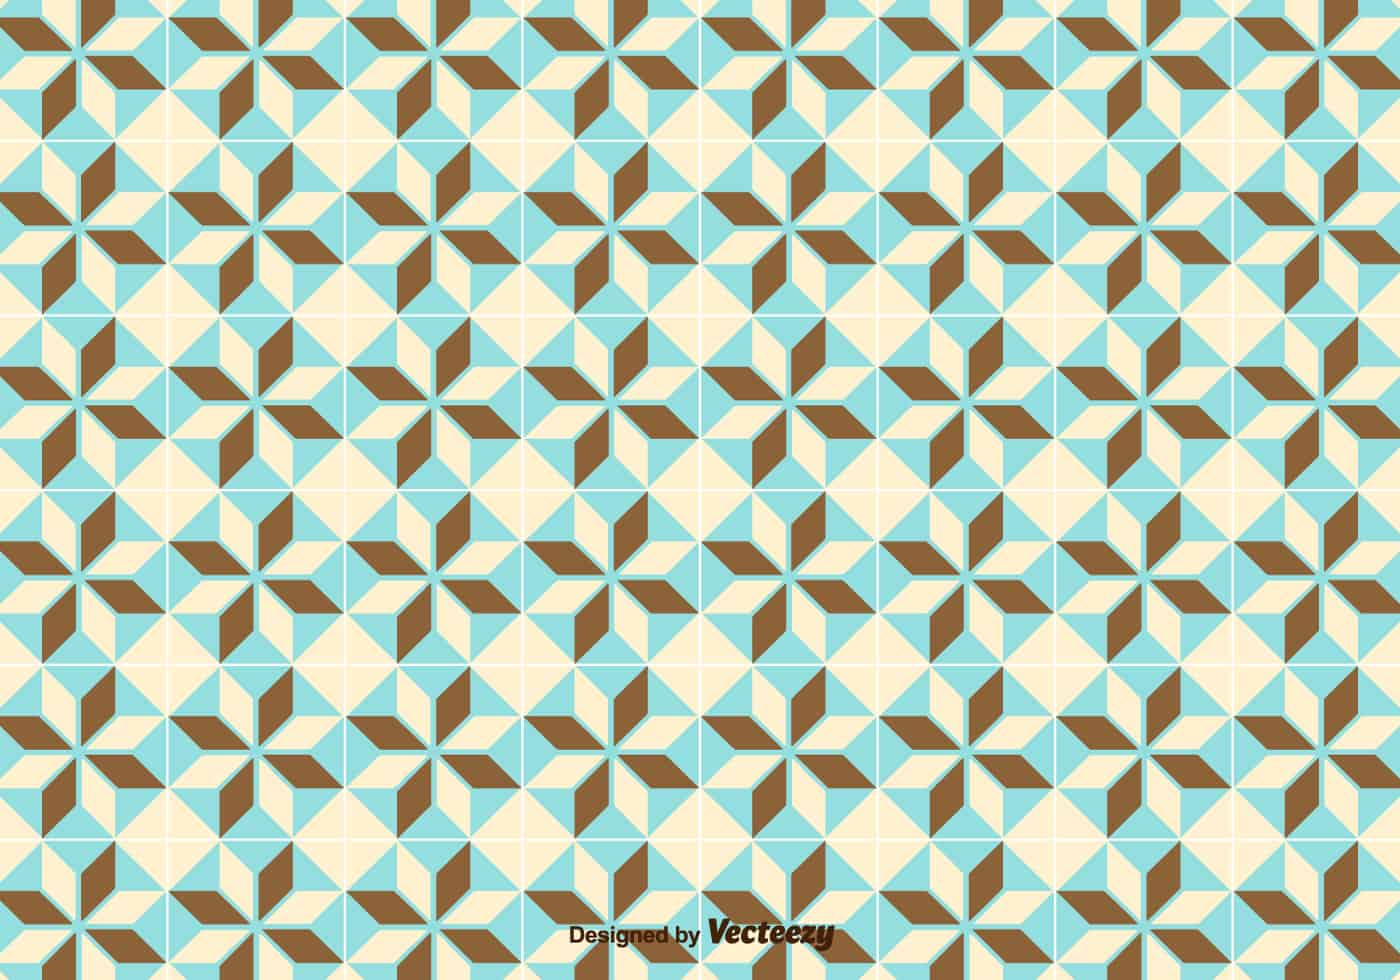 Simple Geometric Pattern/Tiles Pattern - Download Free Vector Art ...